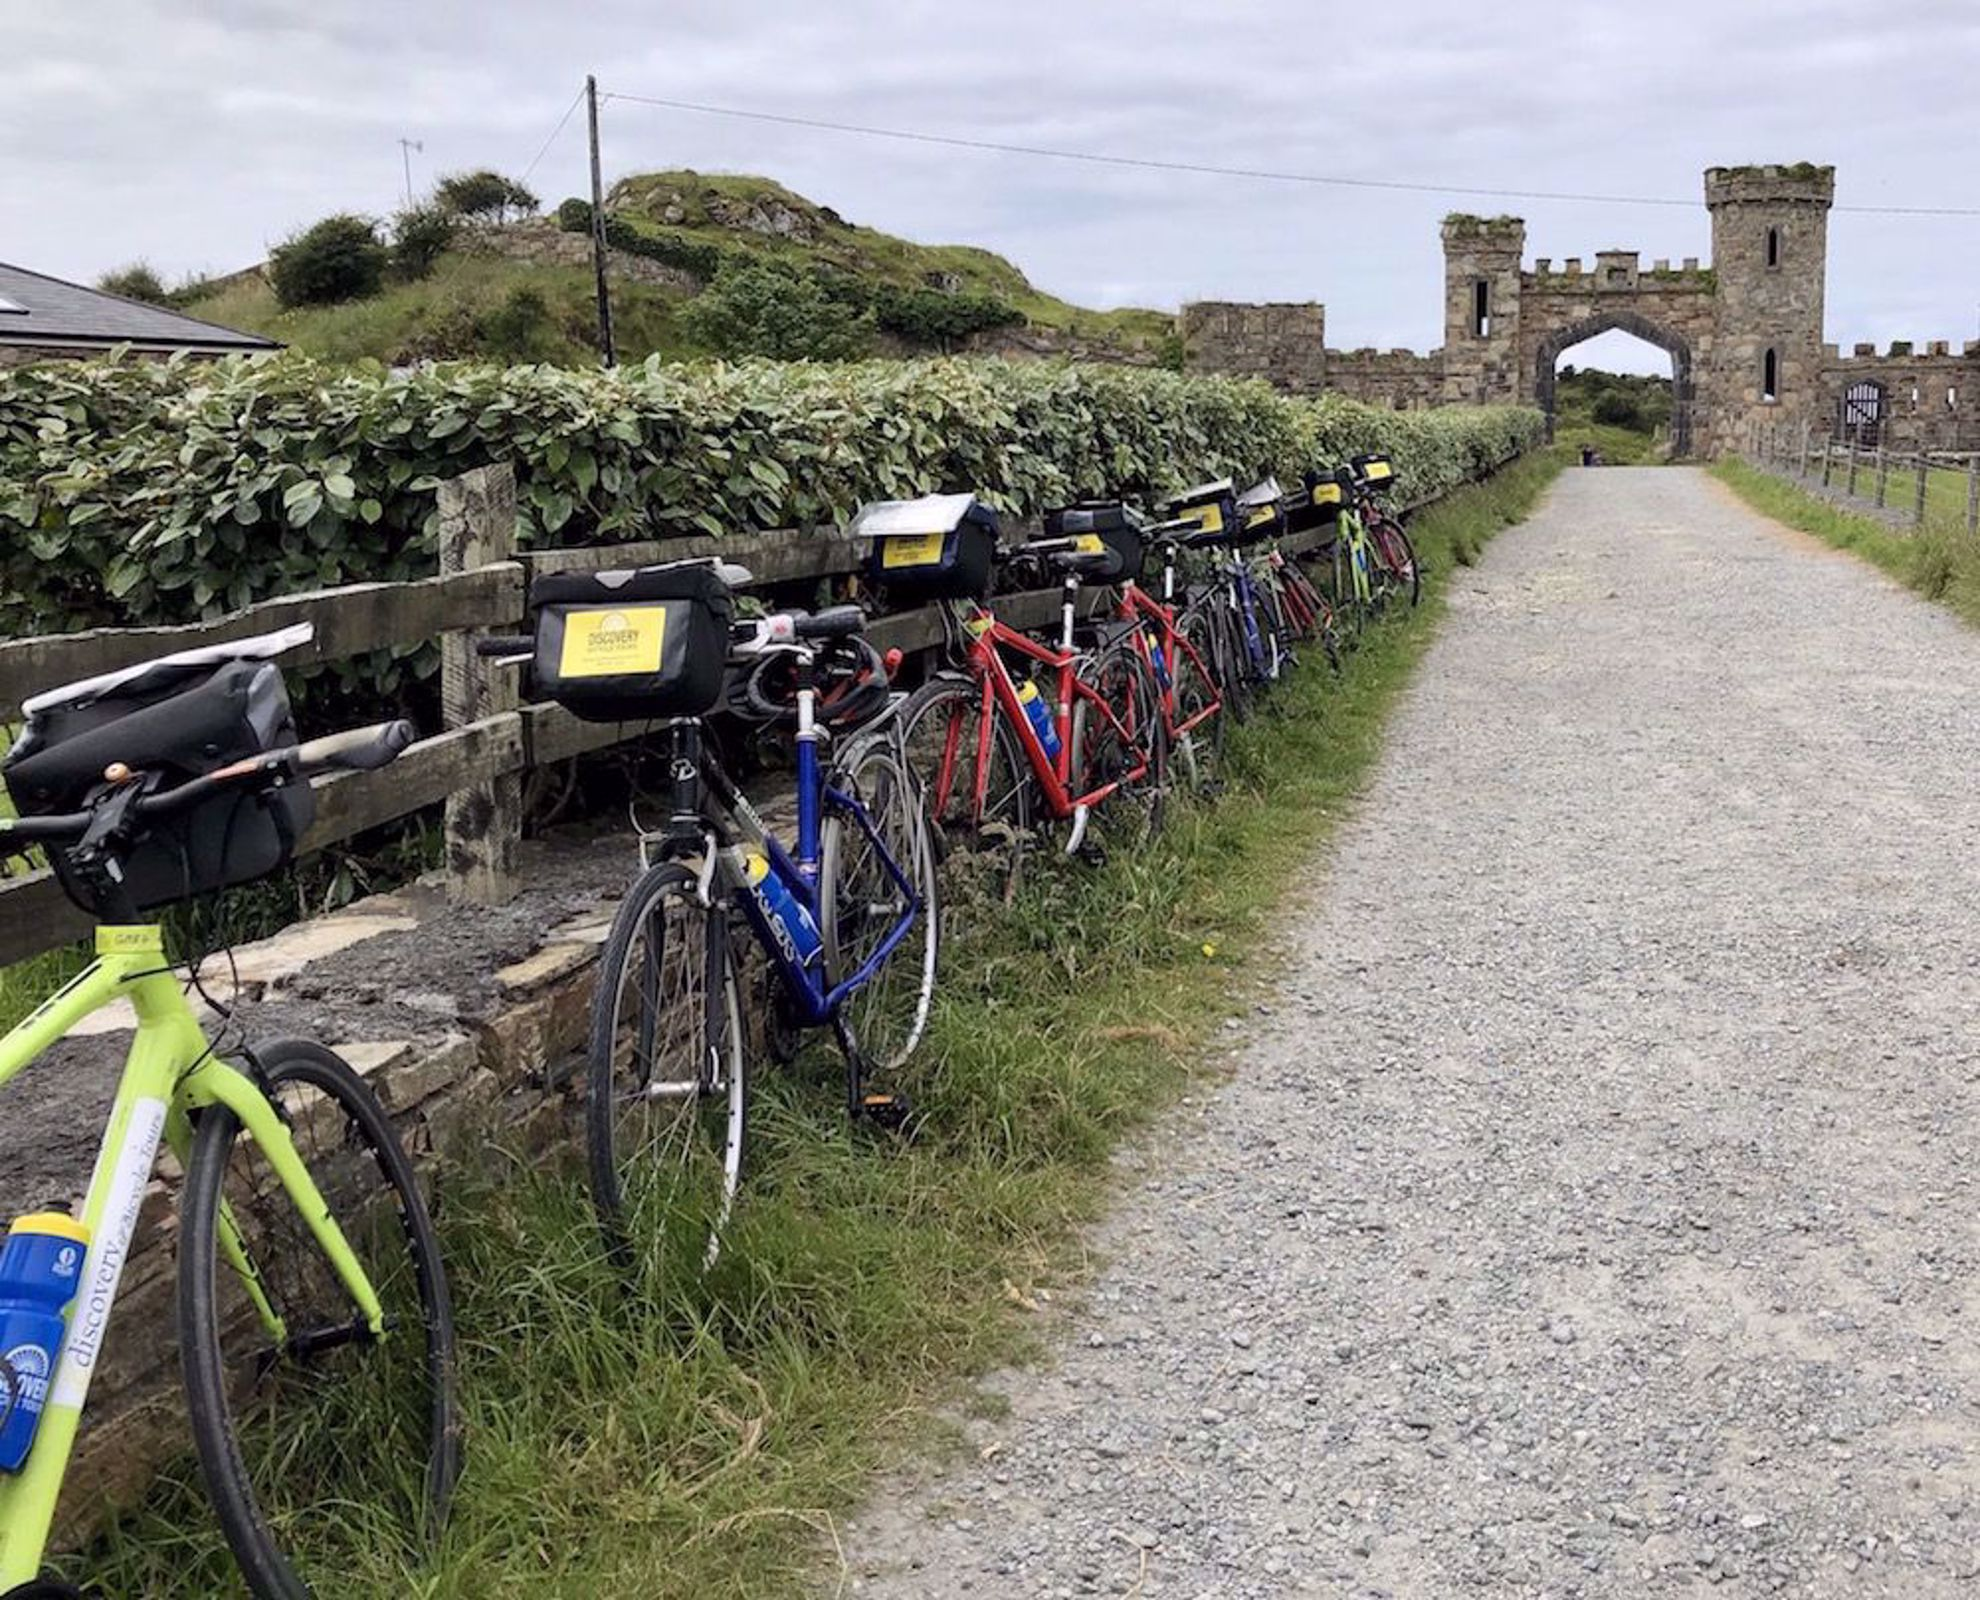 Ready to bike by ancient gate